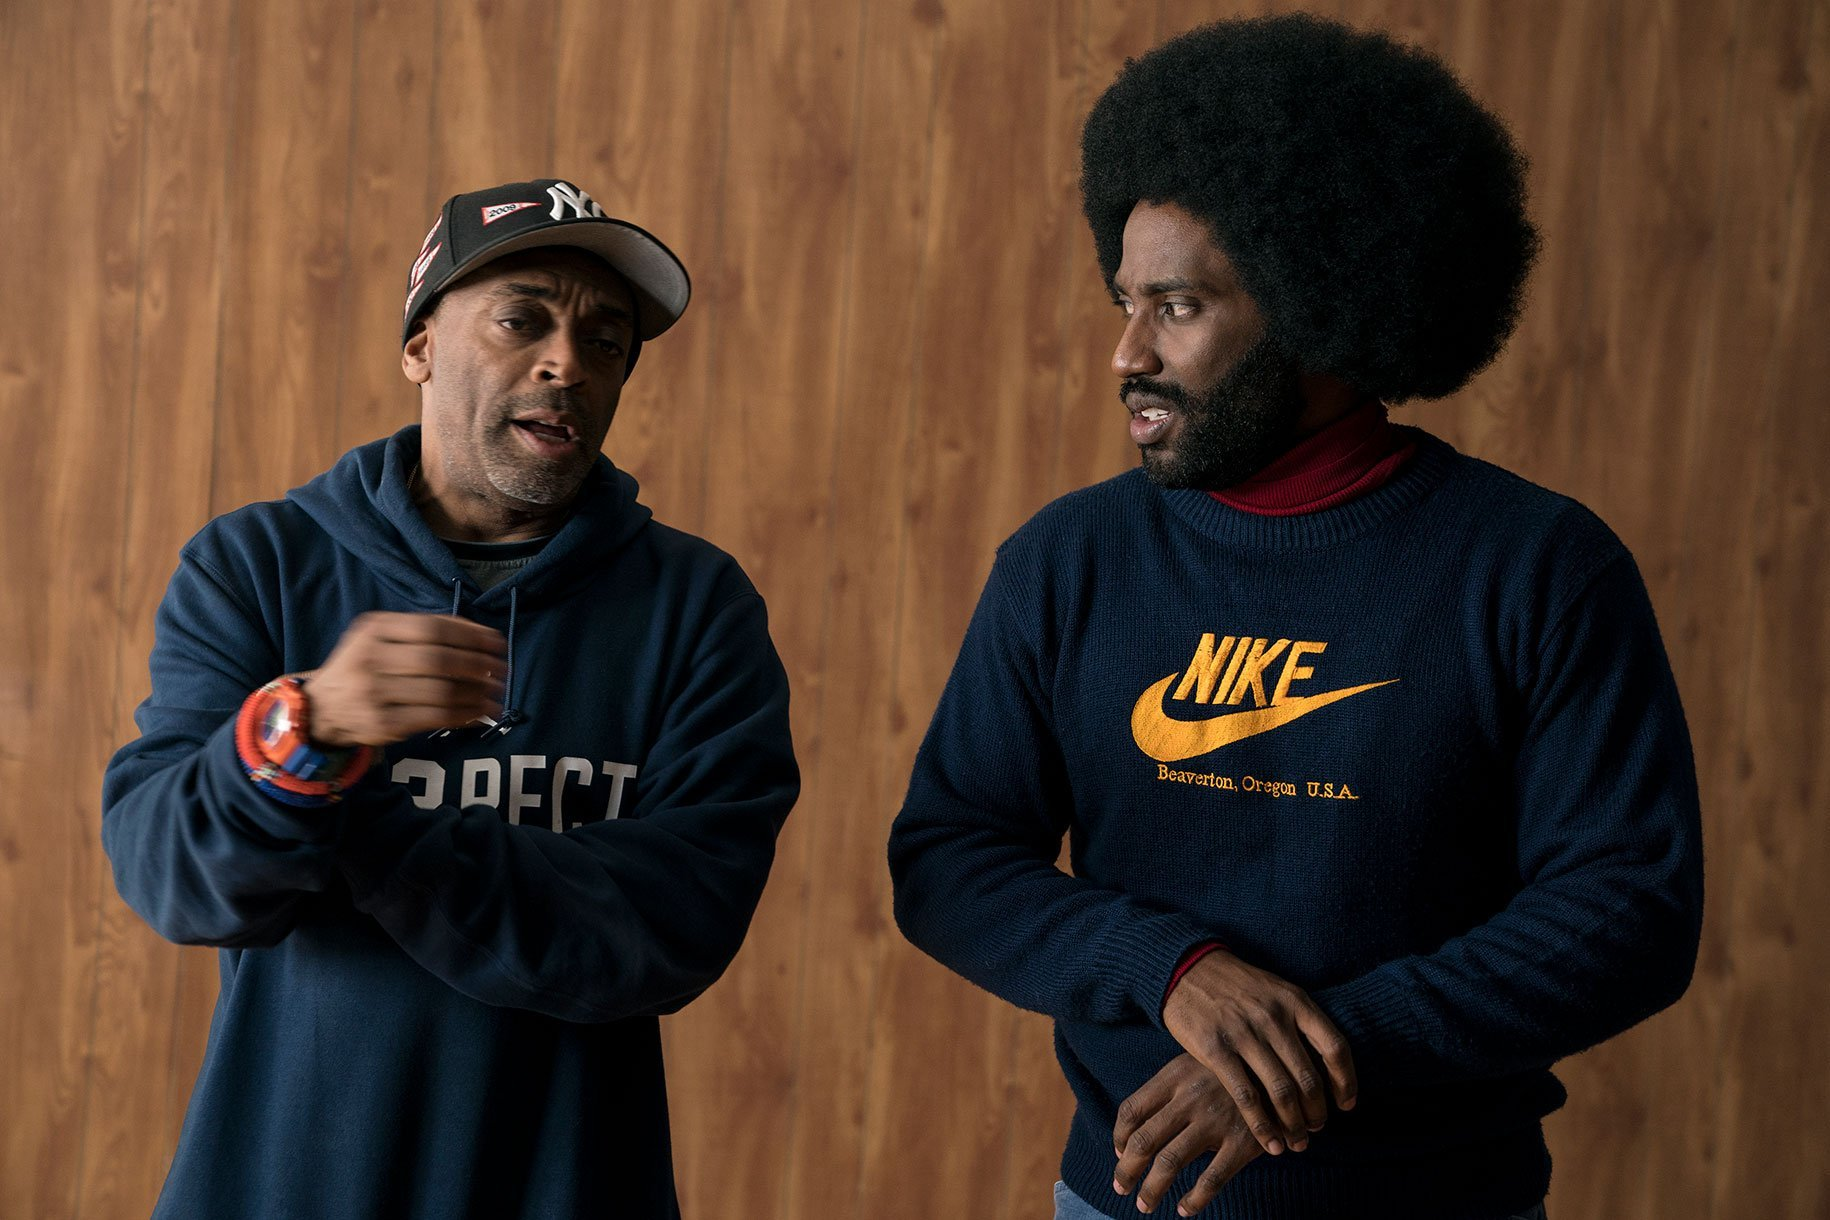 Spike Lee Wants a Nomination, But He's Keeping Oscar History in Perspective